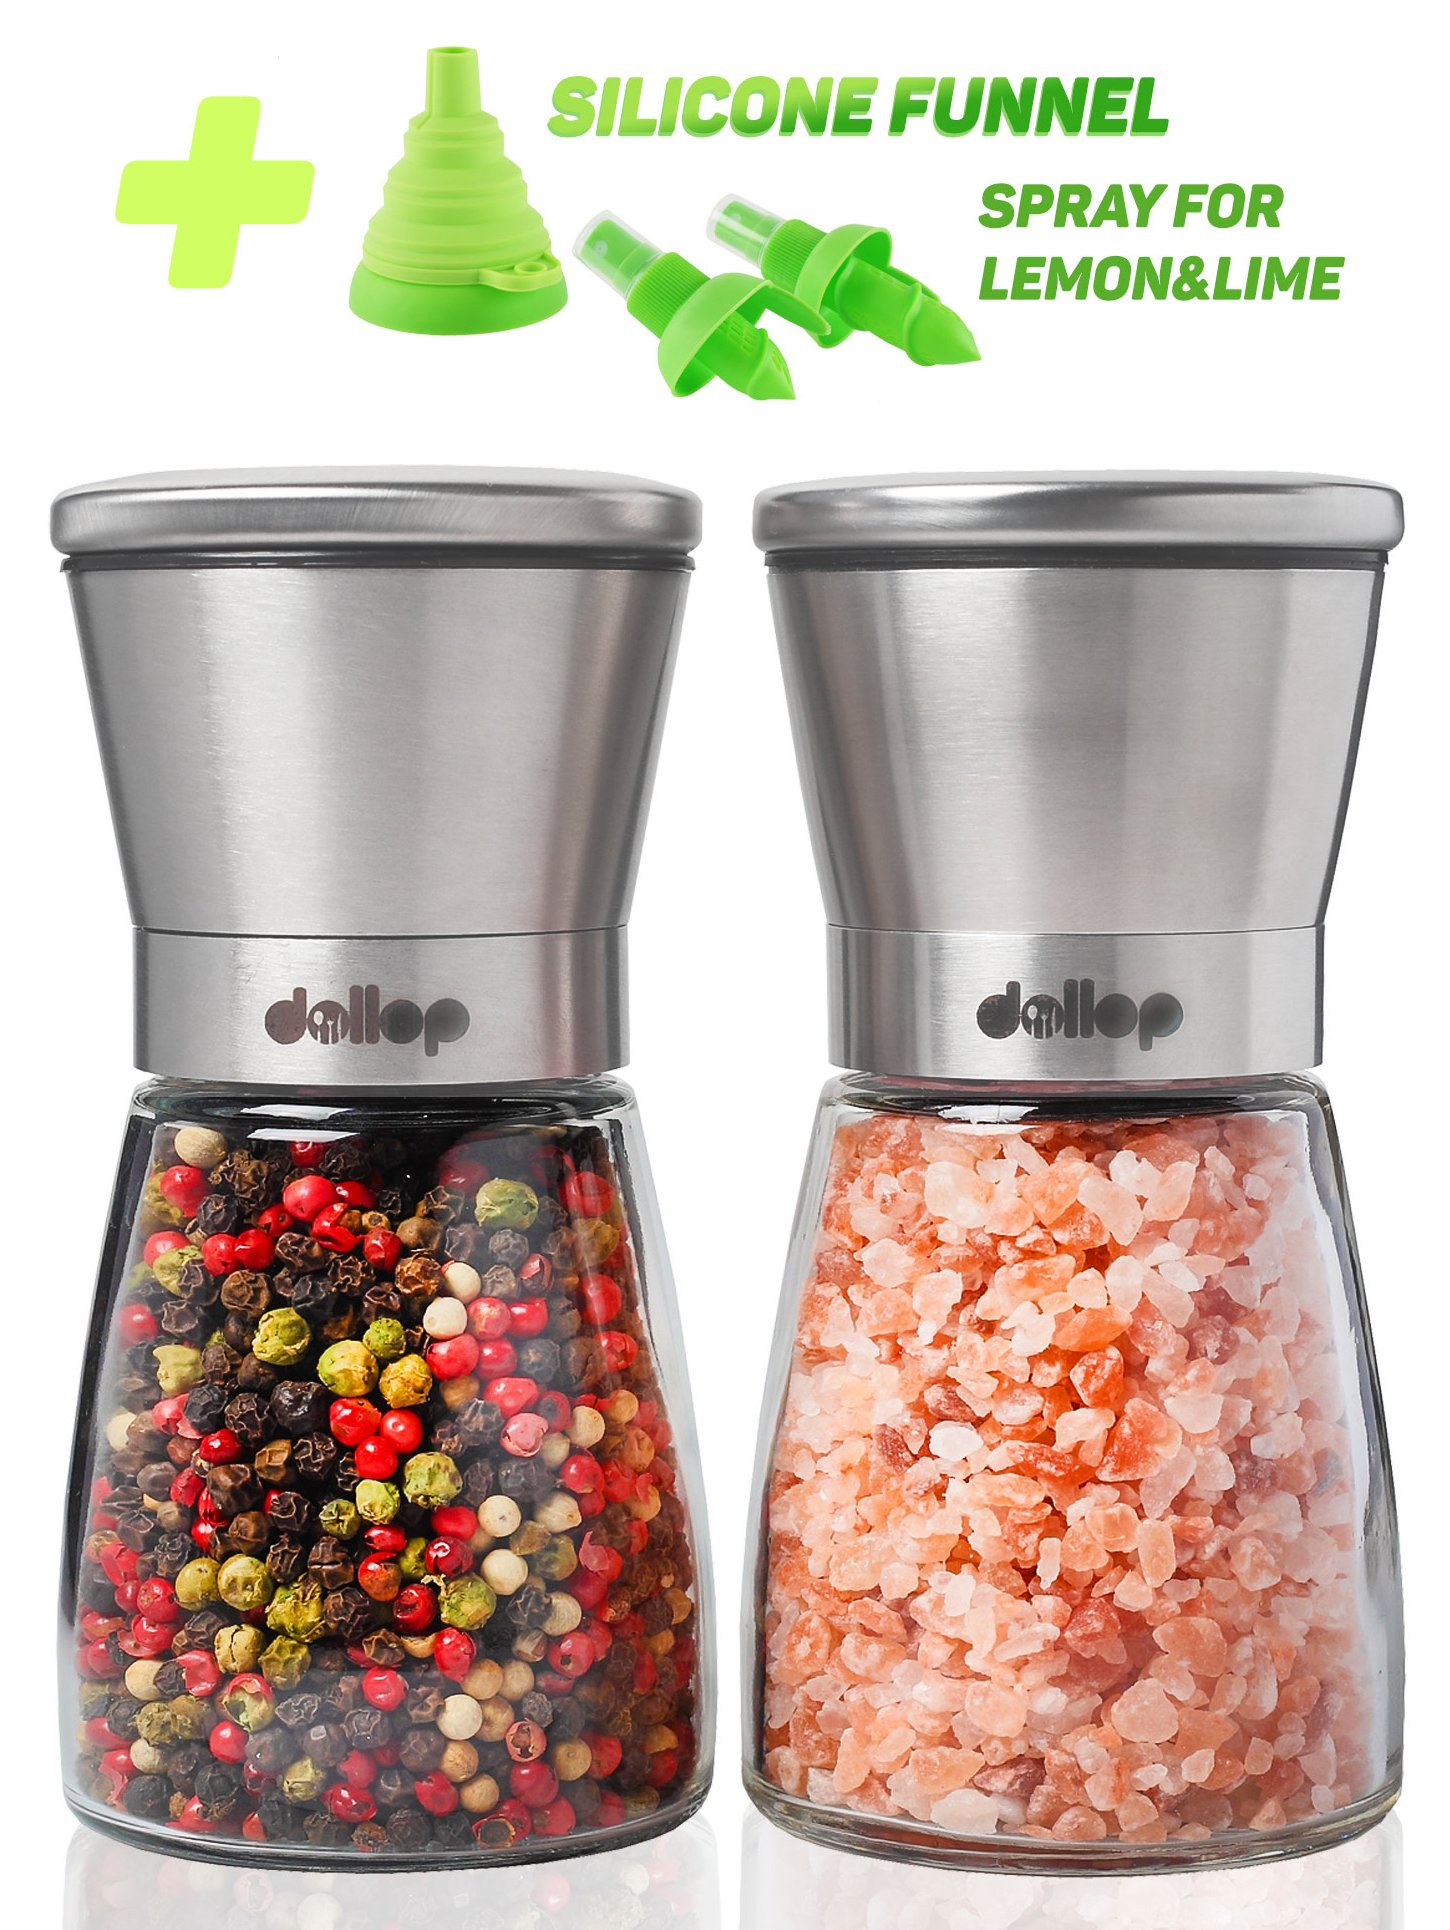 Salt and Pepper Grinder Set – Glass Shakers & Adjustable Ceramic Rotor in 2 Stainless Steel Mills + Silicone Funnel & 2 Citrus Sprayer – Best for Tasty and Healthy Food by Dollop